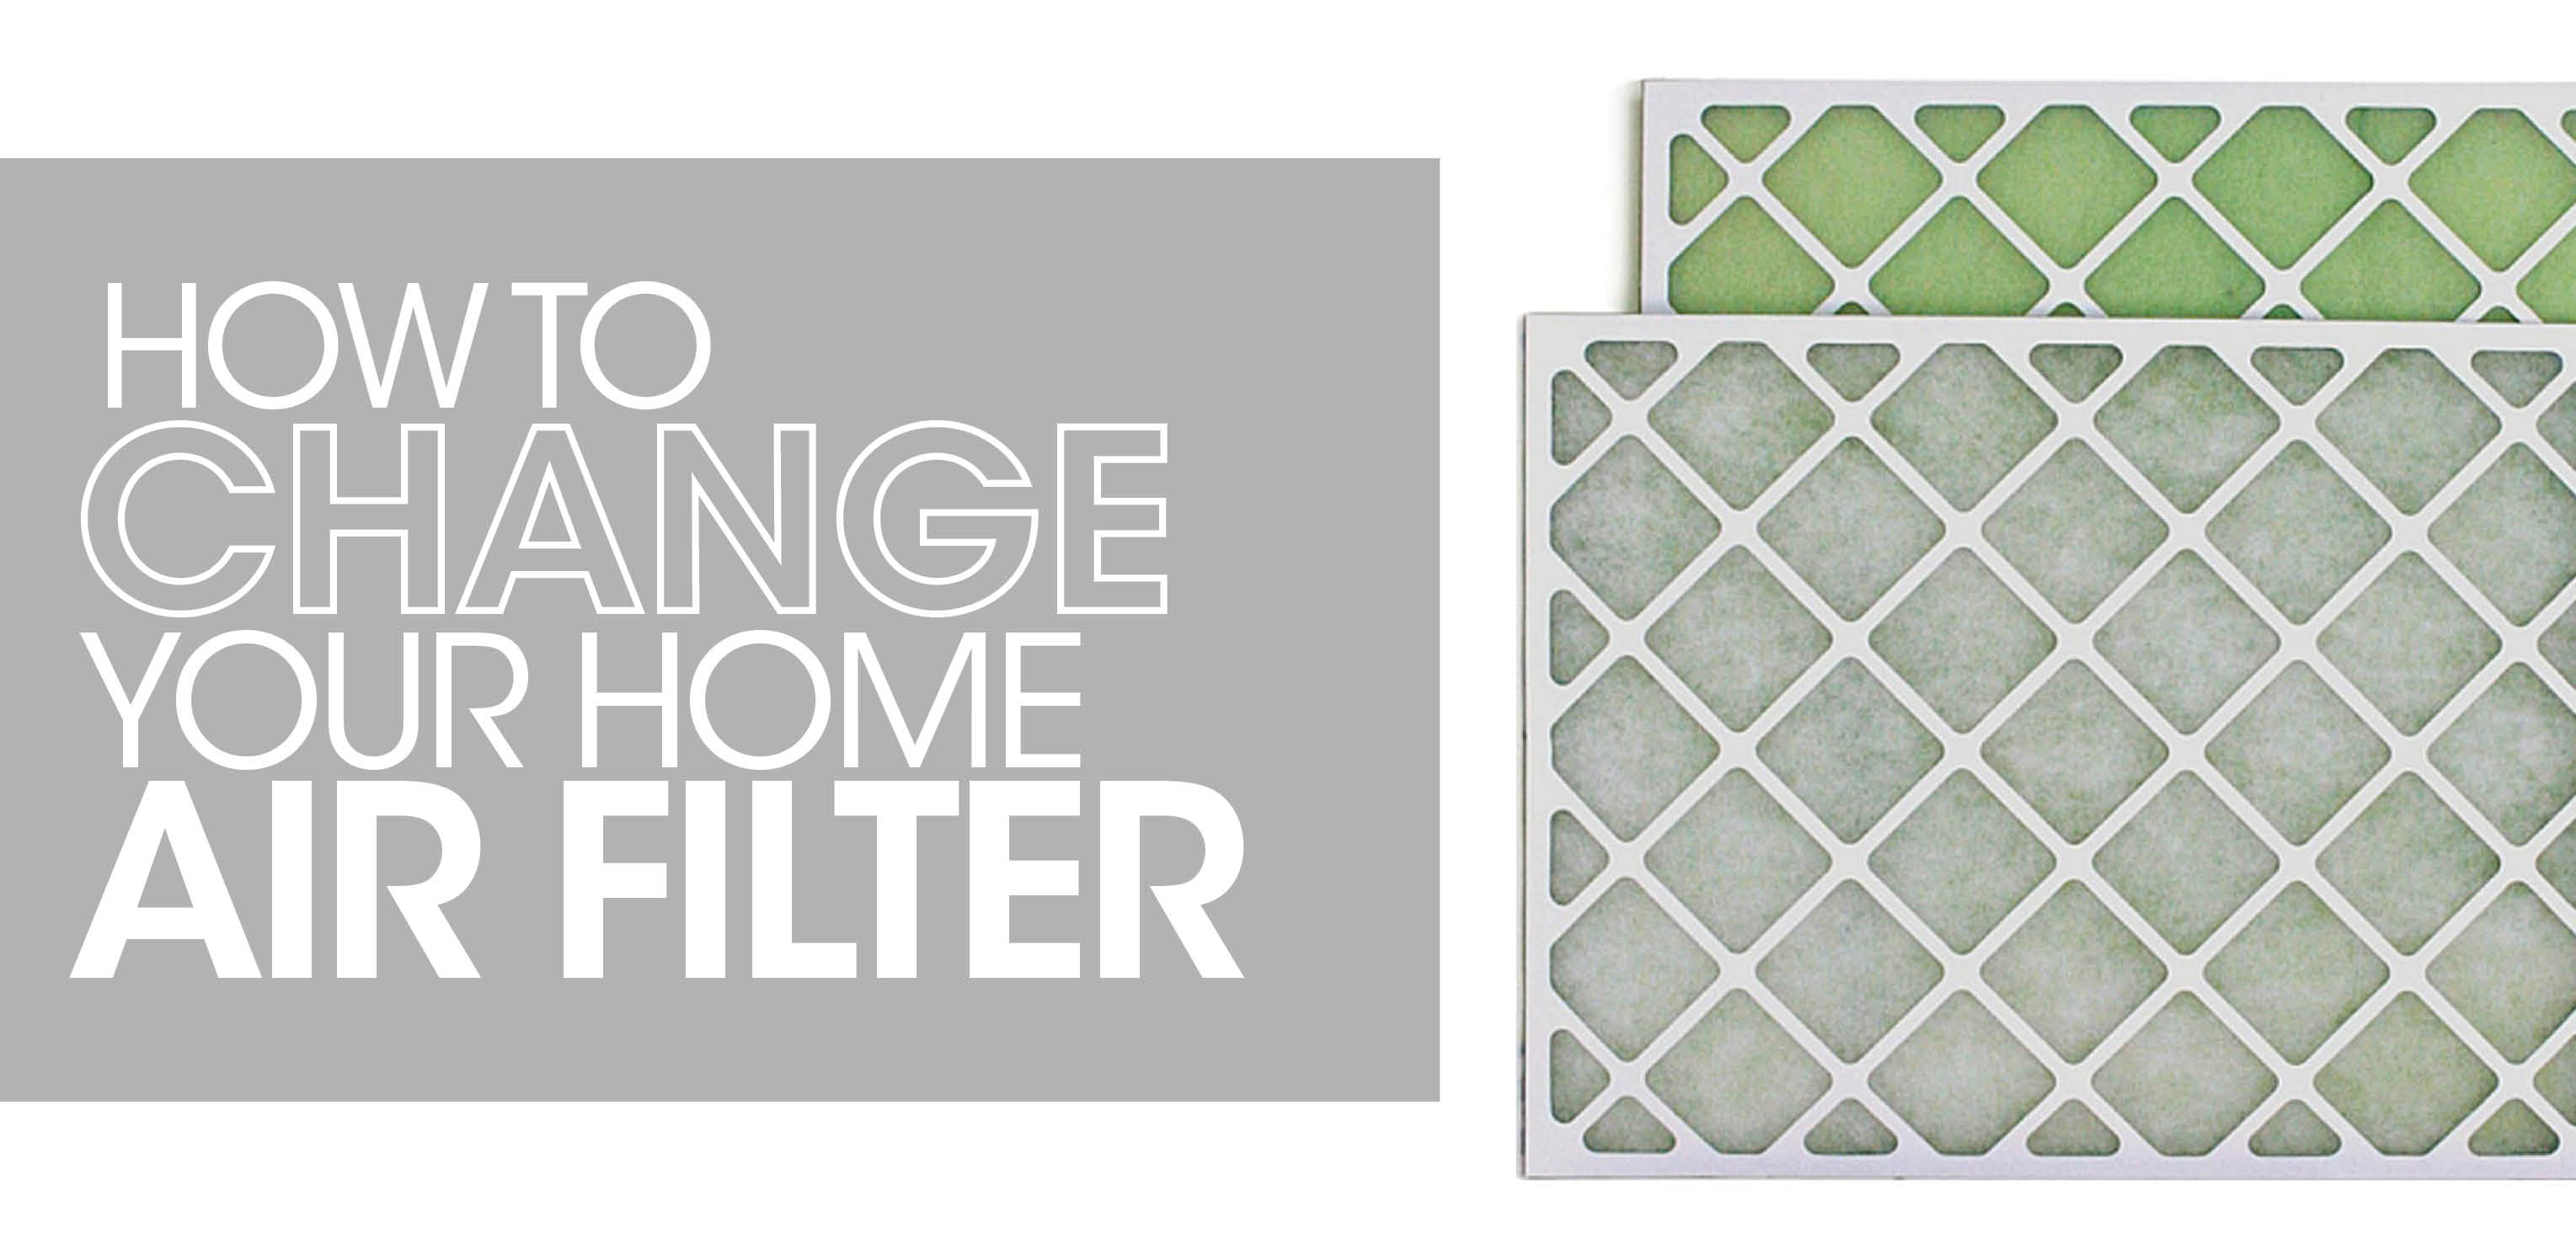 How to Change Your Home Air Filter